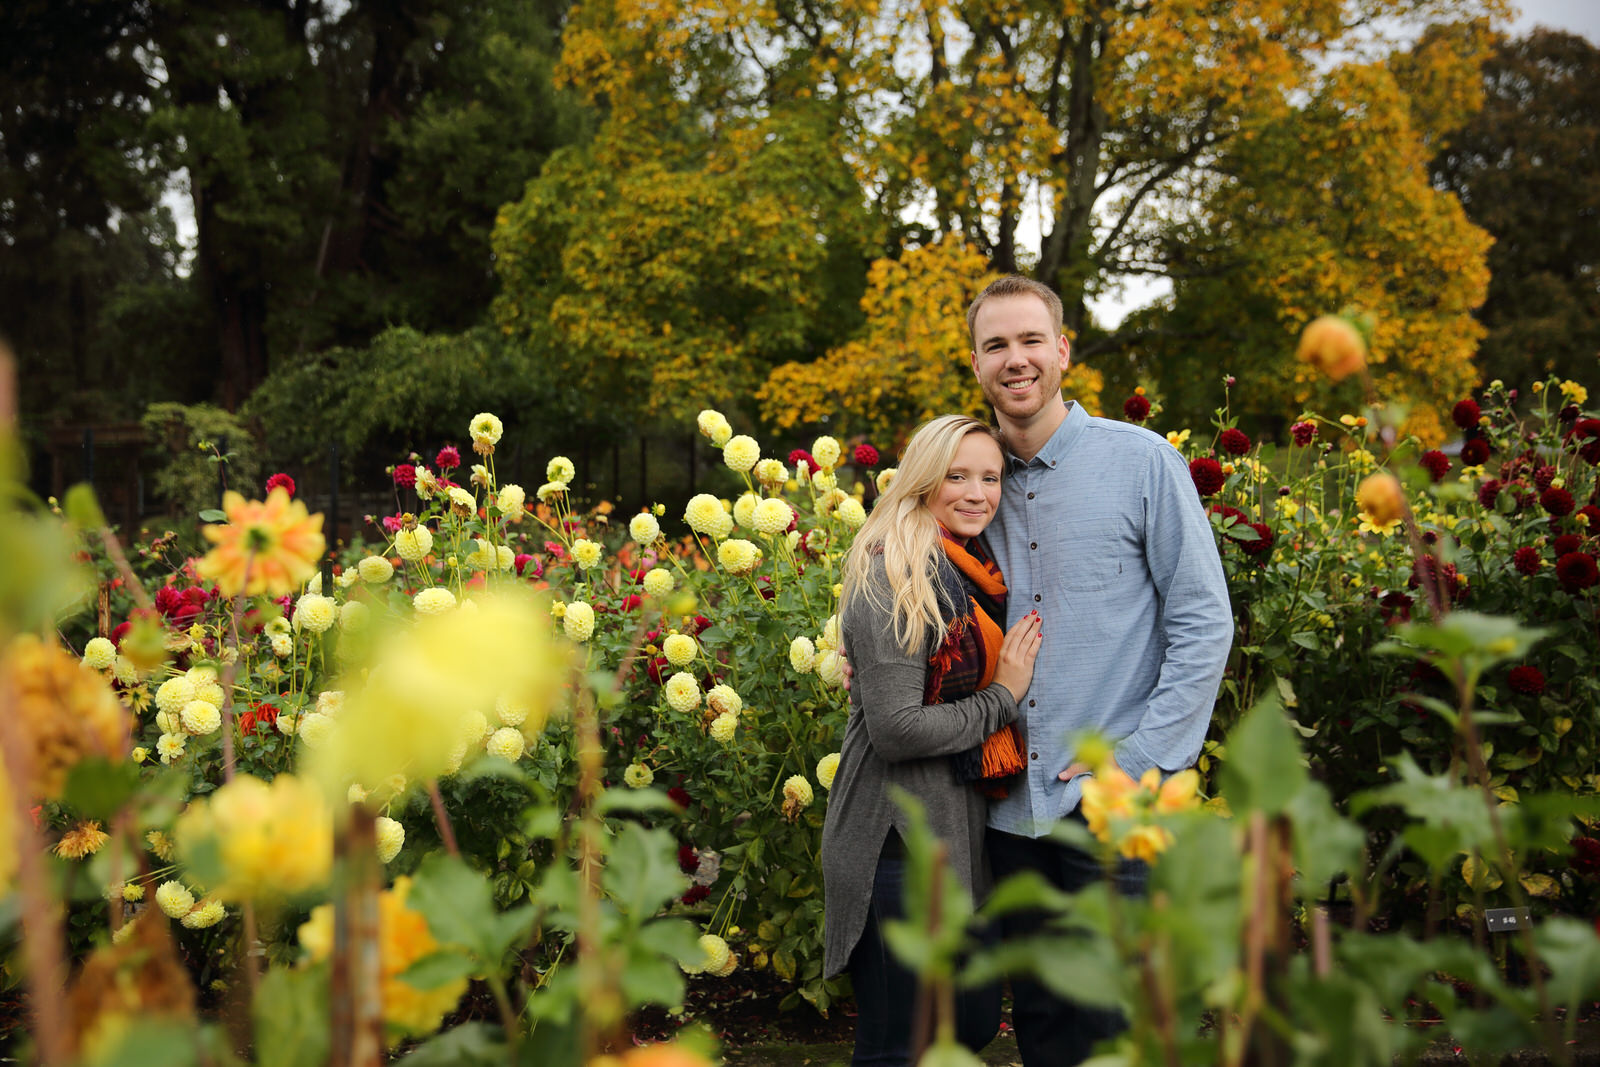 Engagement Photos Point Defiance Rose Garden in Tacoma